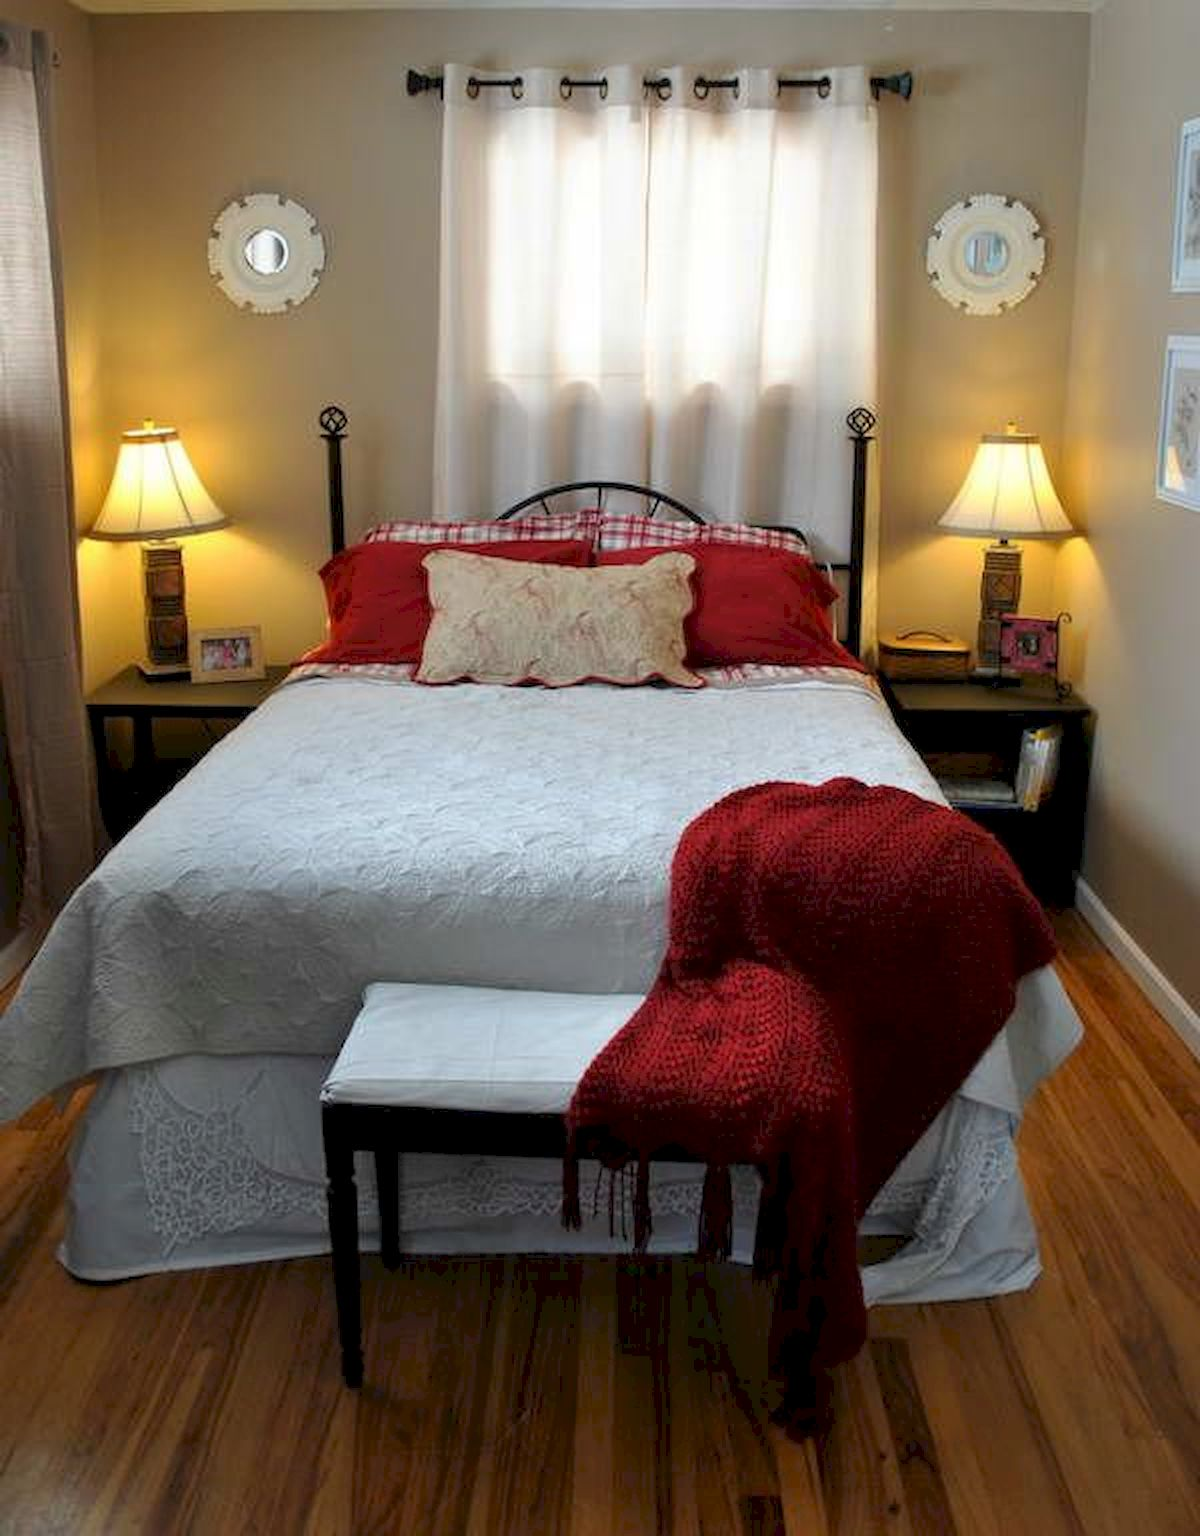 Awesome Small Bedroom Decorating Ideas On A Budget (16)